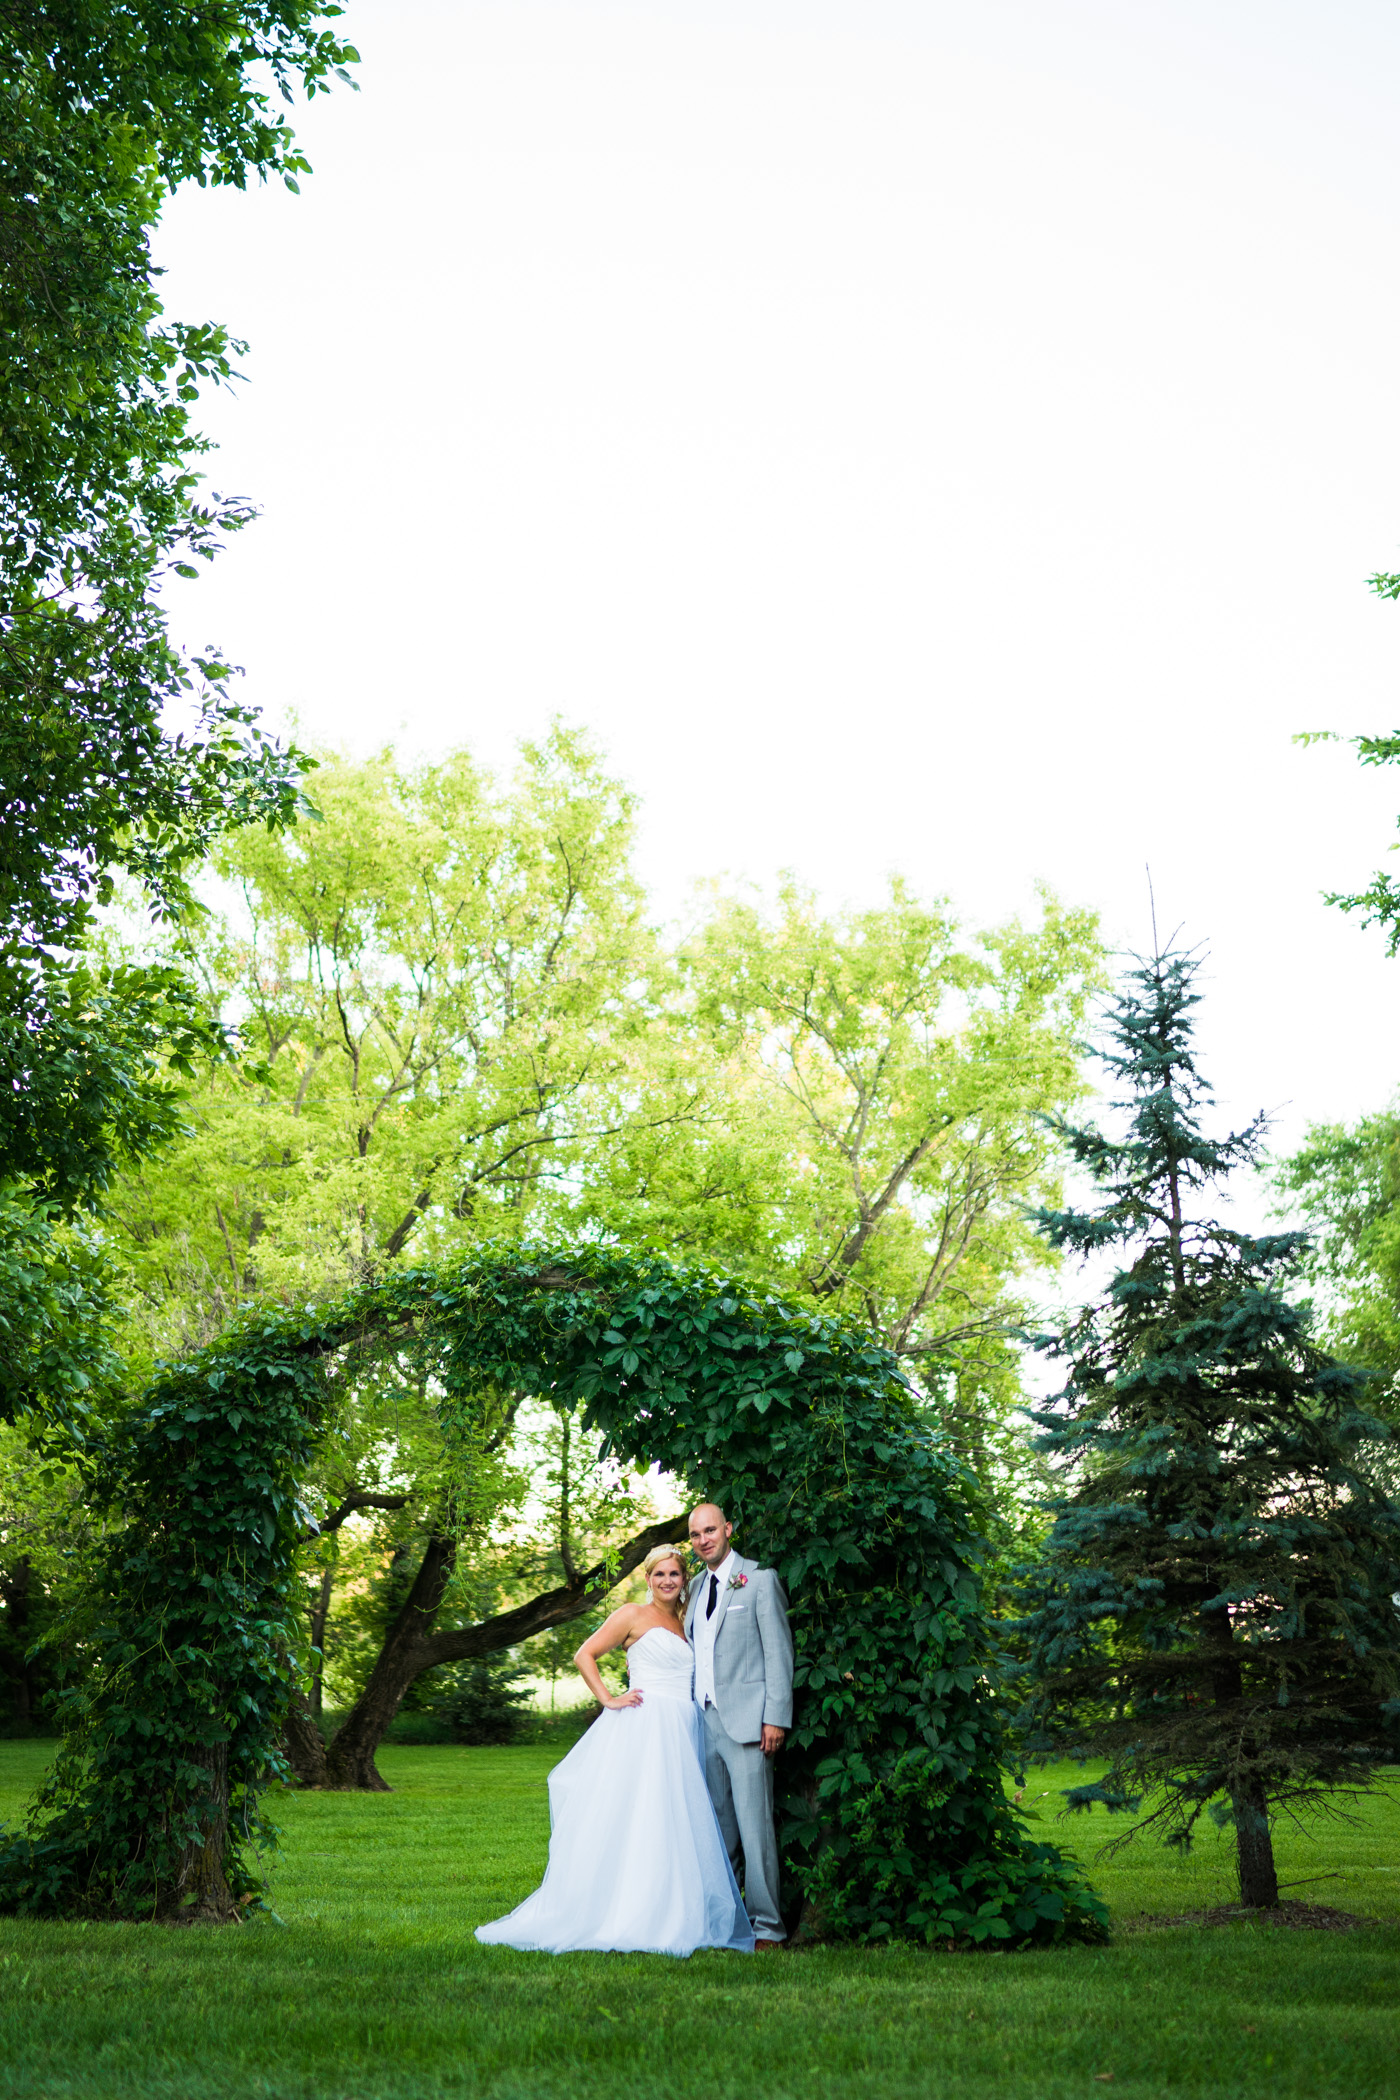 Jenn and Adam - Evergreen Village Wedding - COJO Photo-1508.jpg